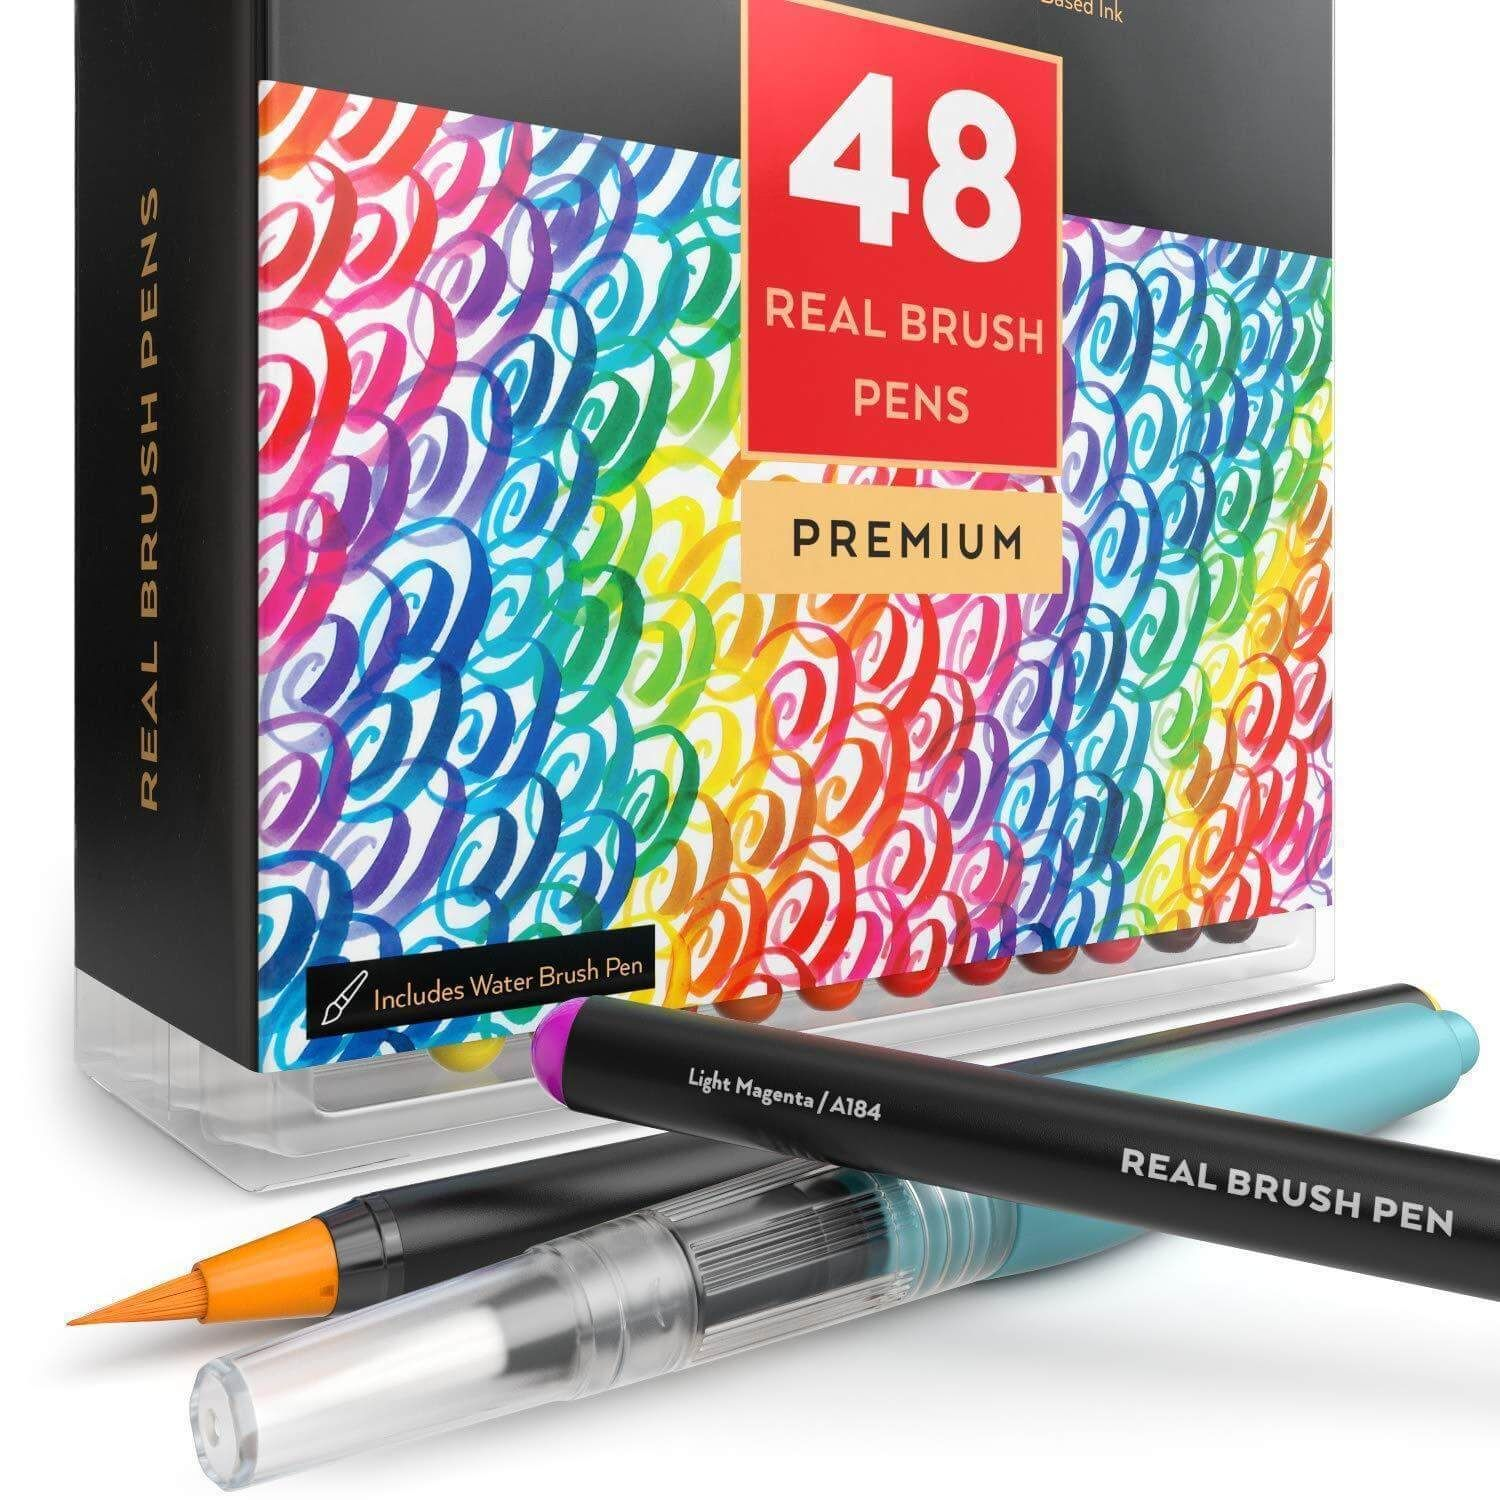 Real Brush Pens Set Of 48 Water Brush Pen Brush Pen Pen Sets